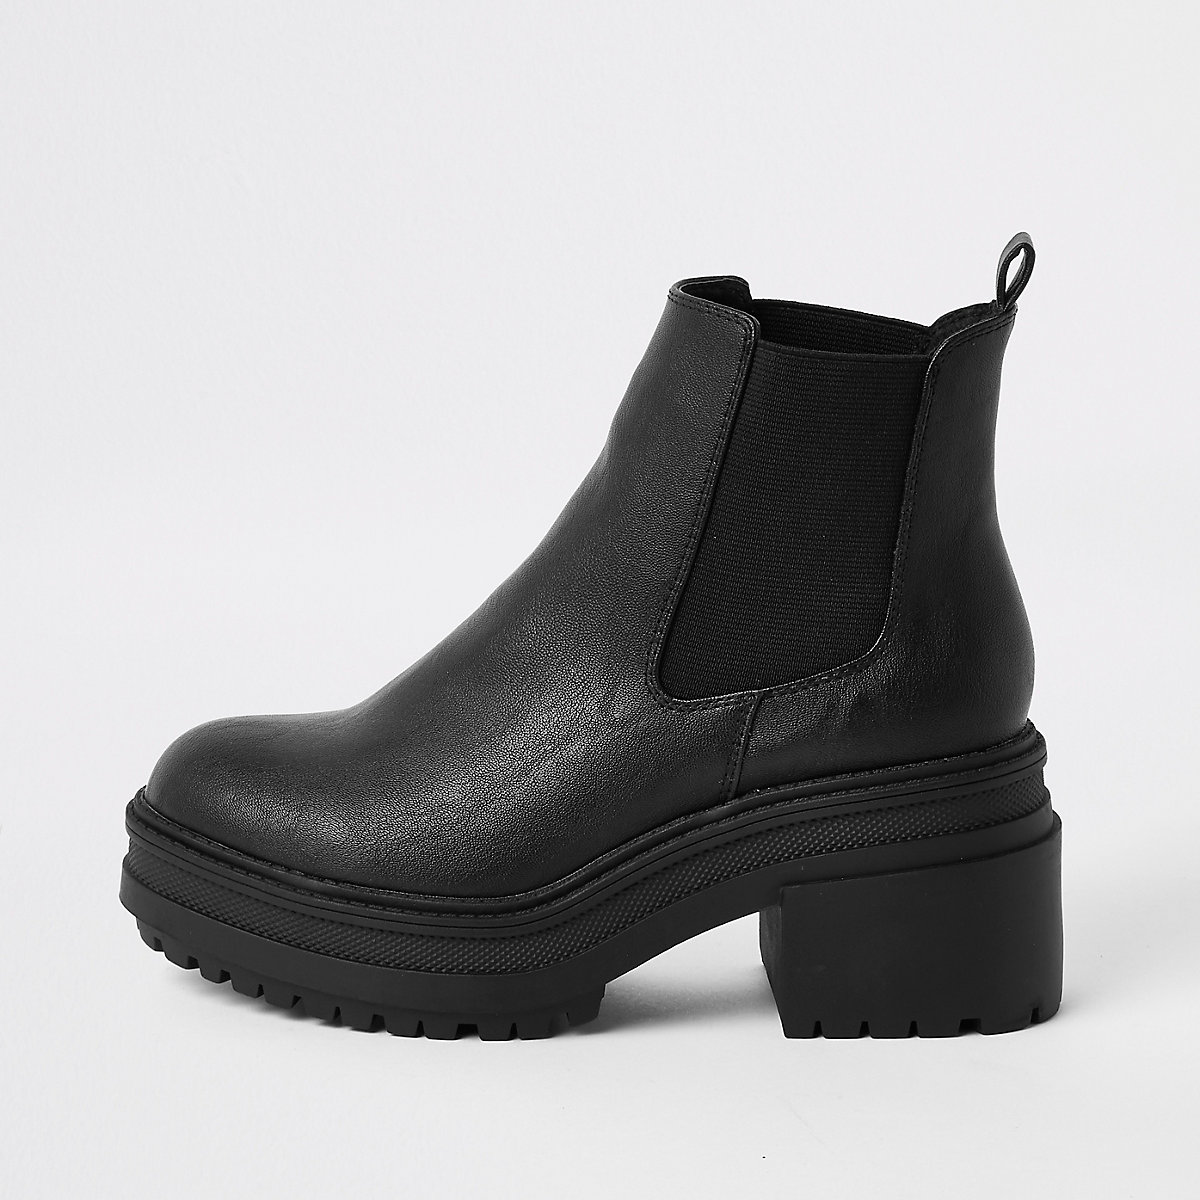 Black chunky chelsea boots - Boots - Shoes & Boots - women